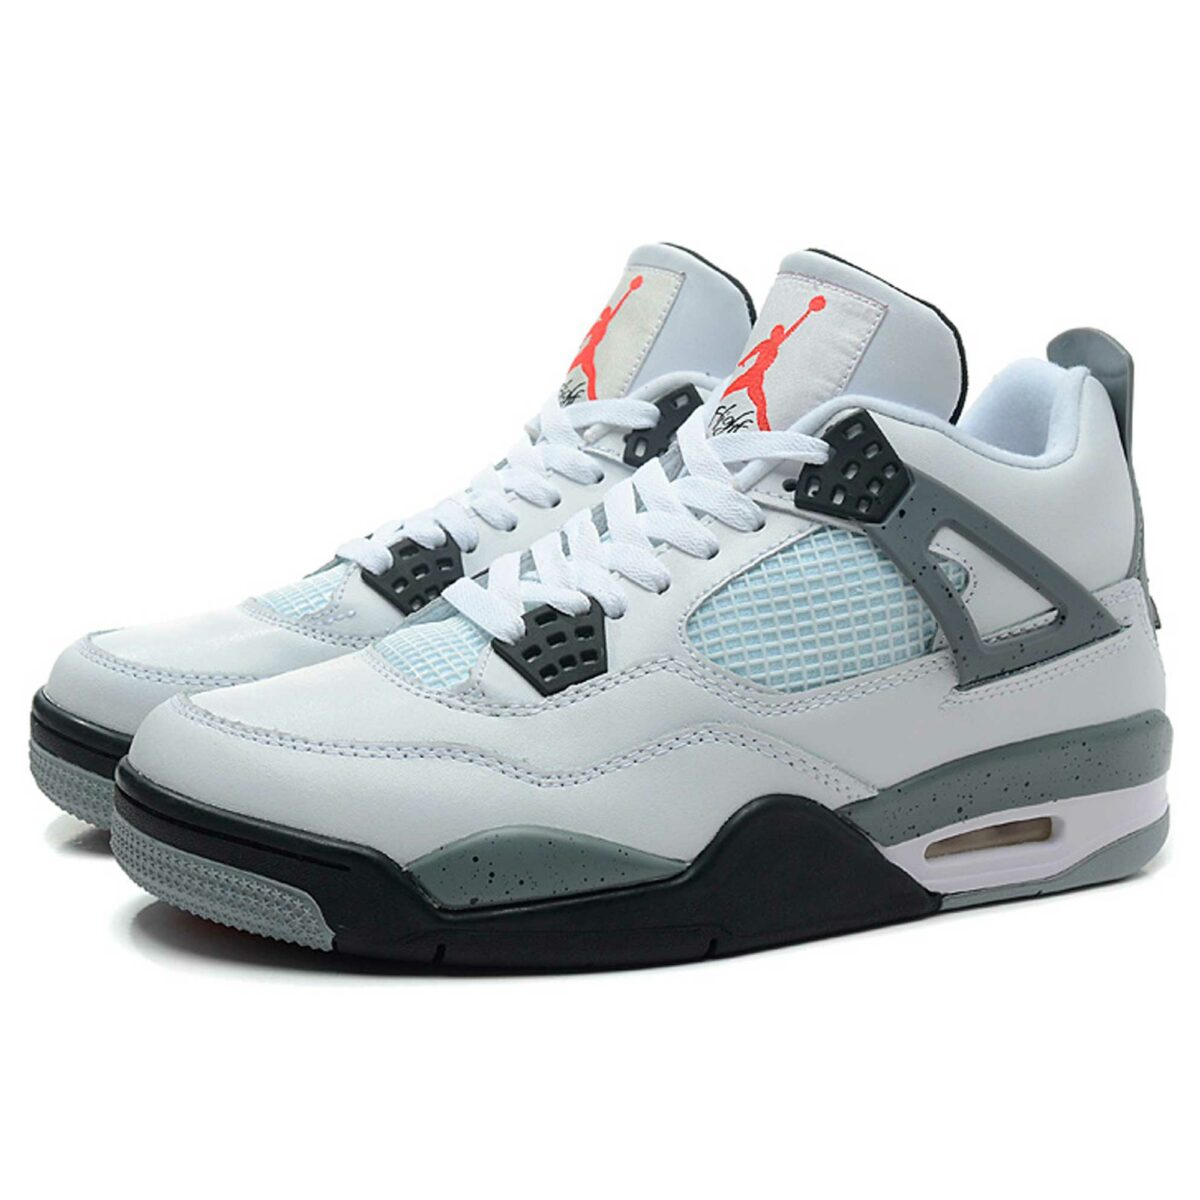 nike air jordan 4 retro white cement og 840606-192 купить